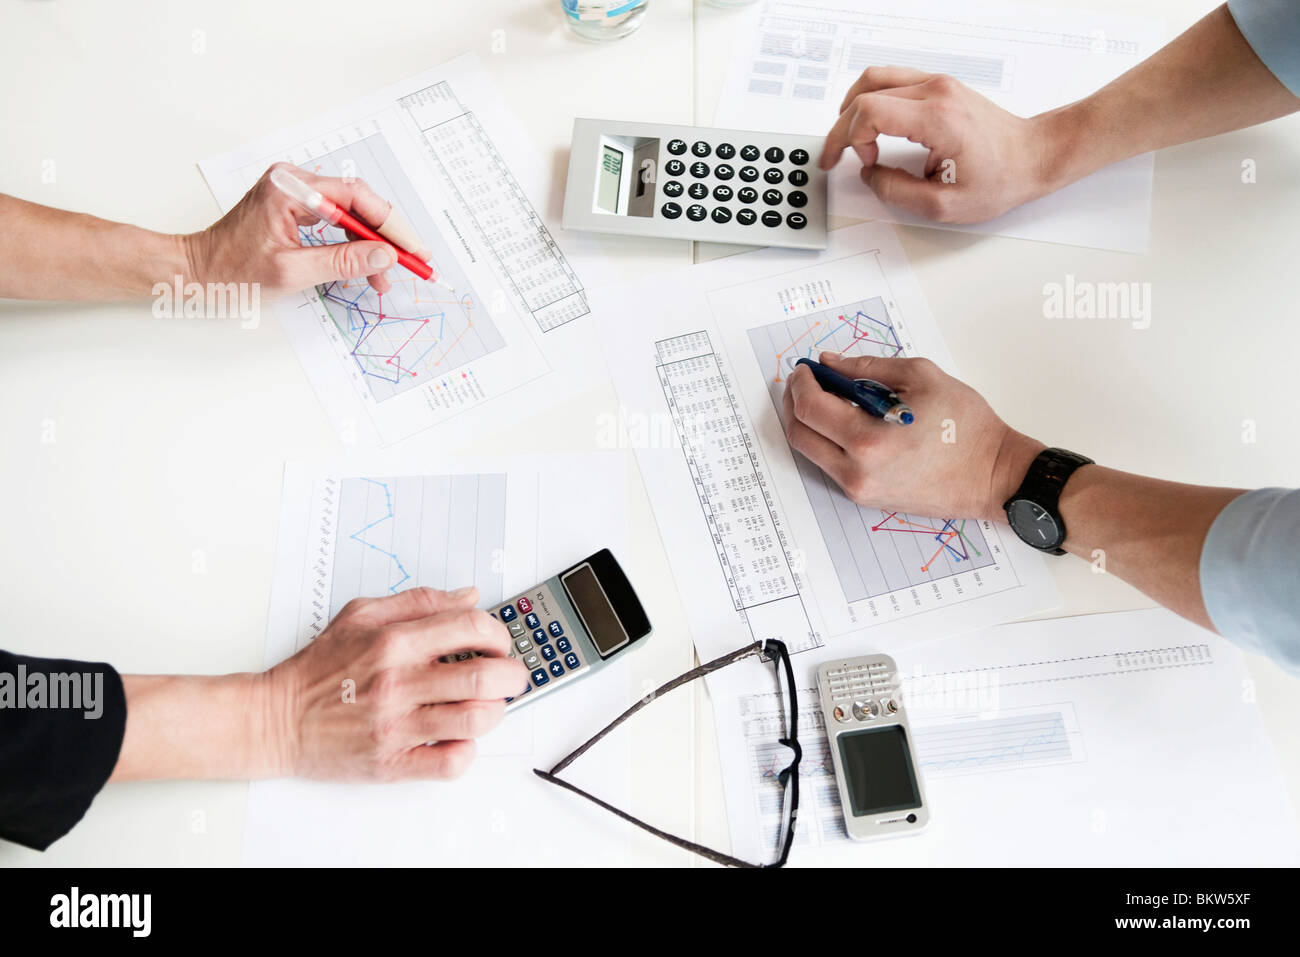 Overview graphs and diagrams - Stock Image